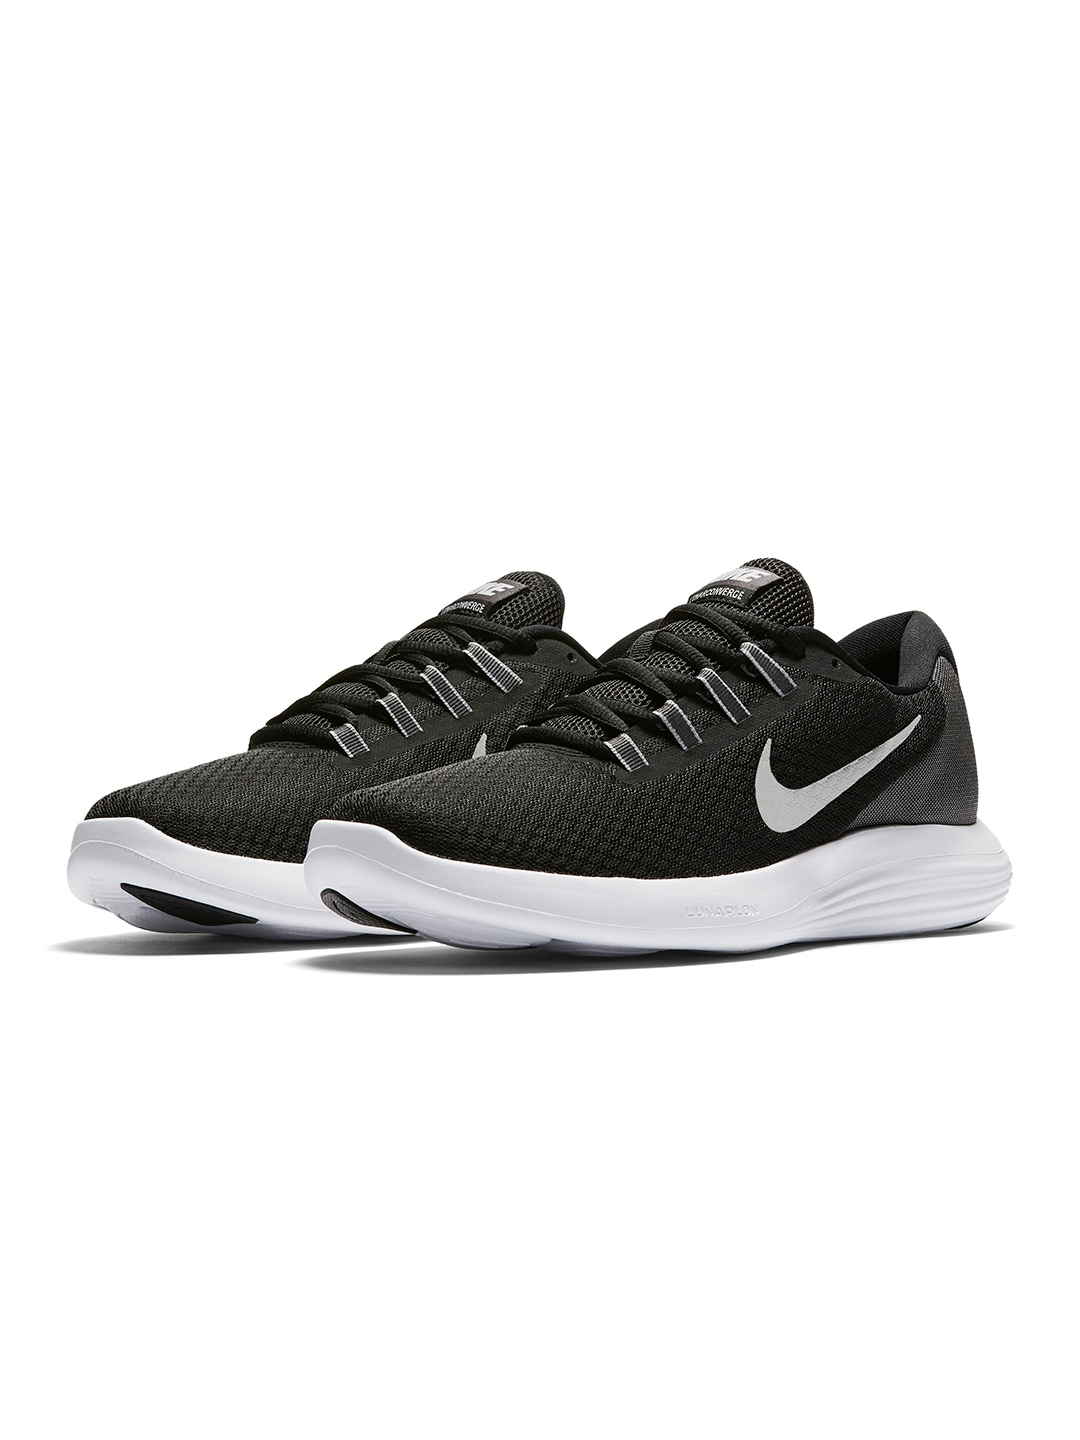 Nike Men Black Lunar Converge Running Shoes price in India